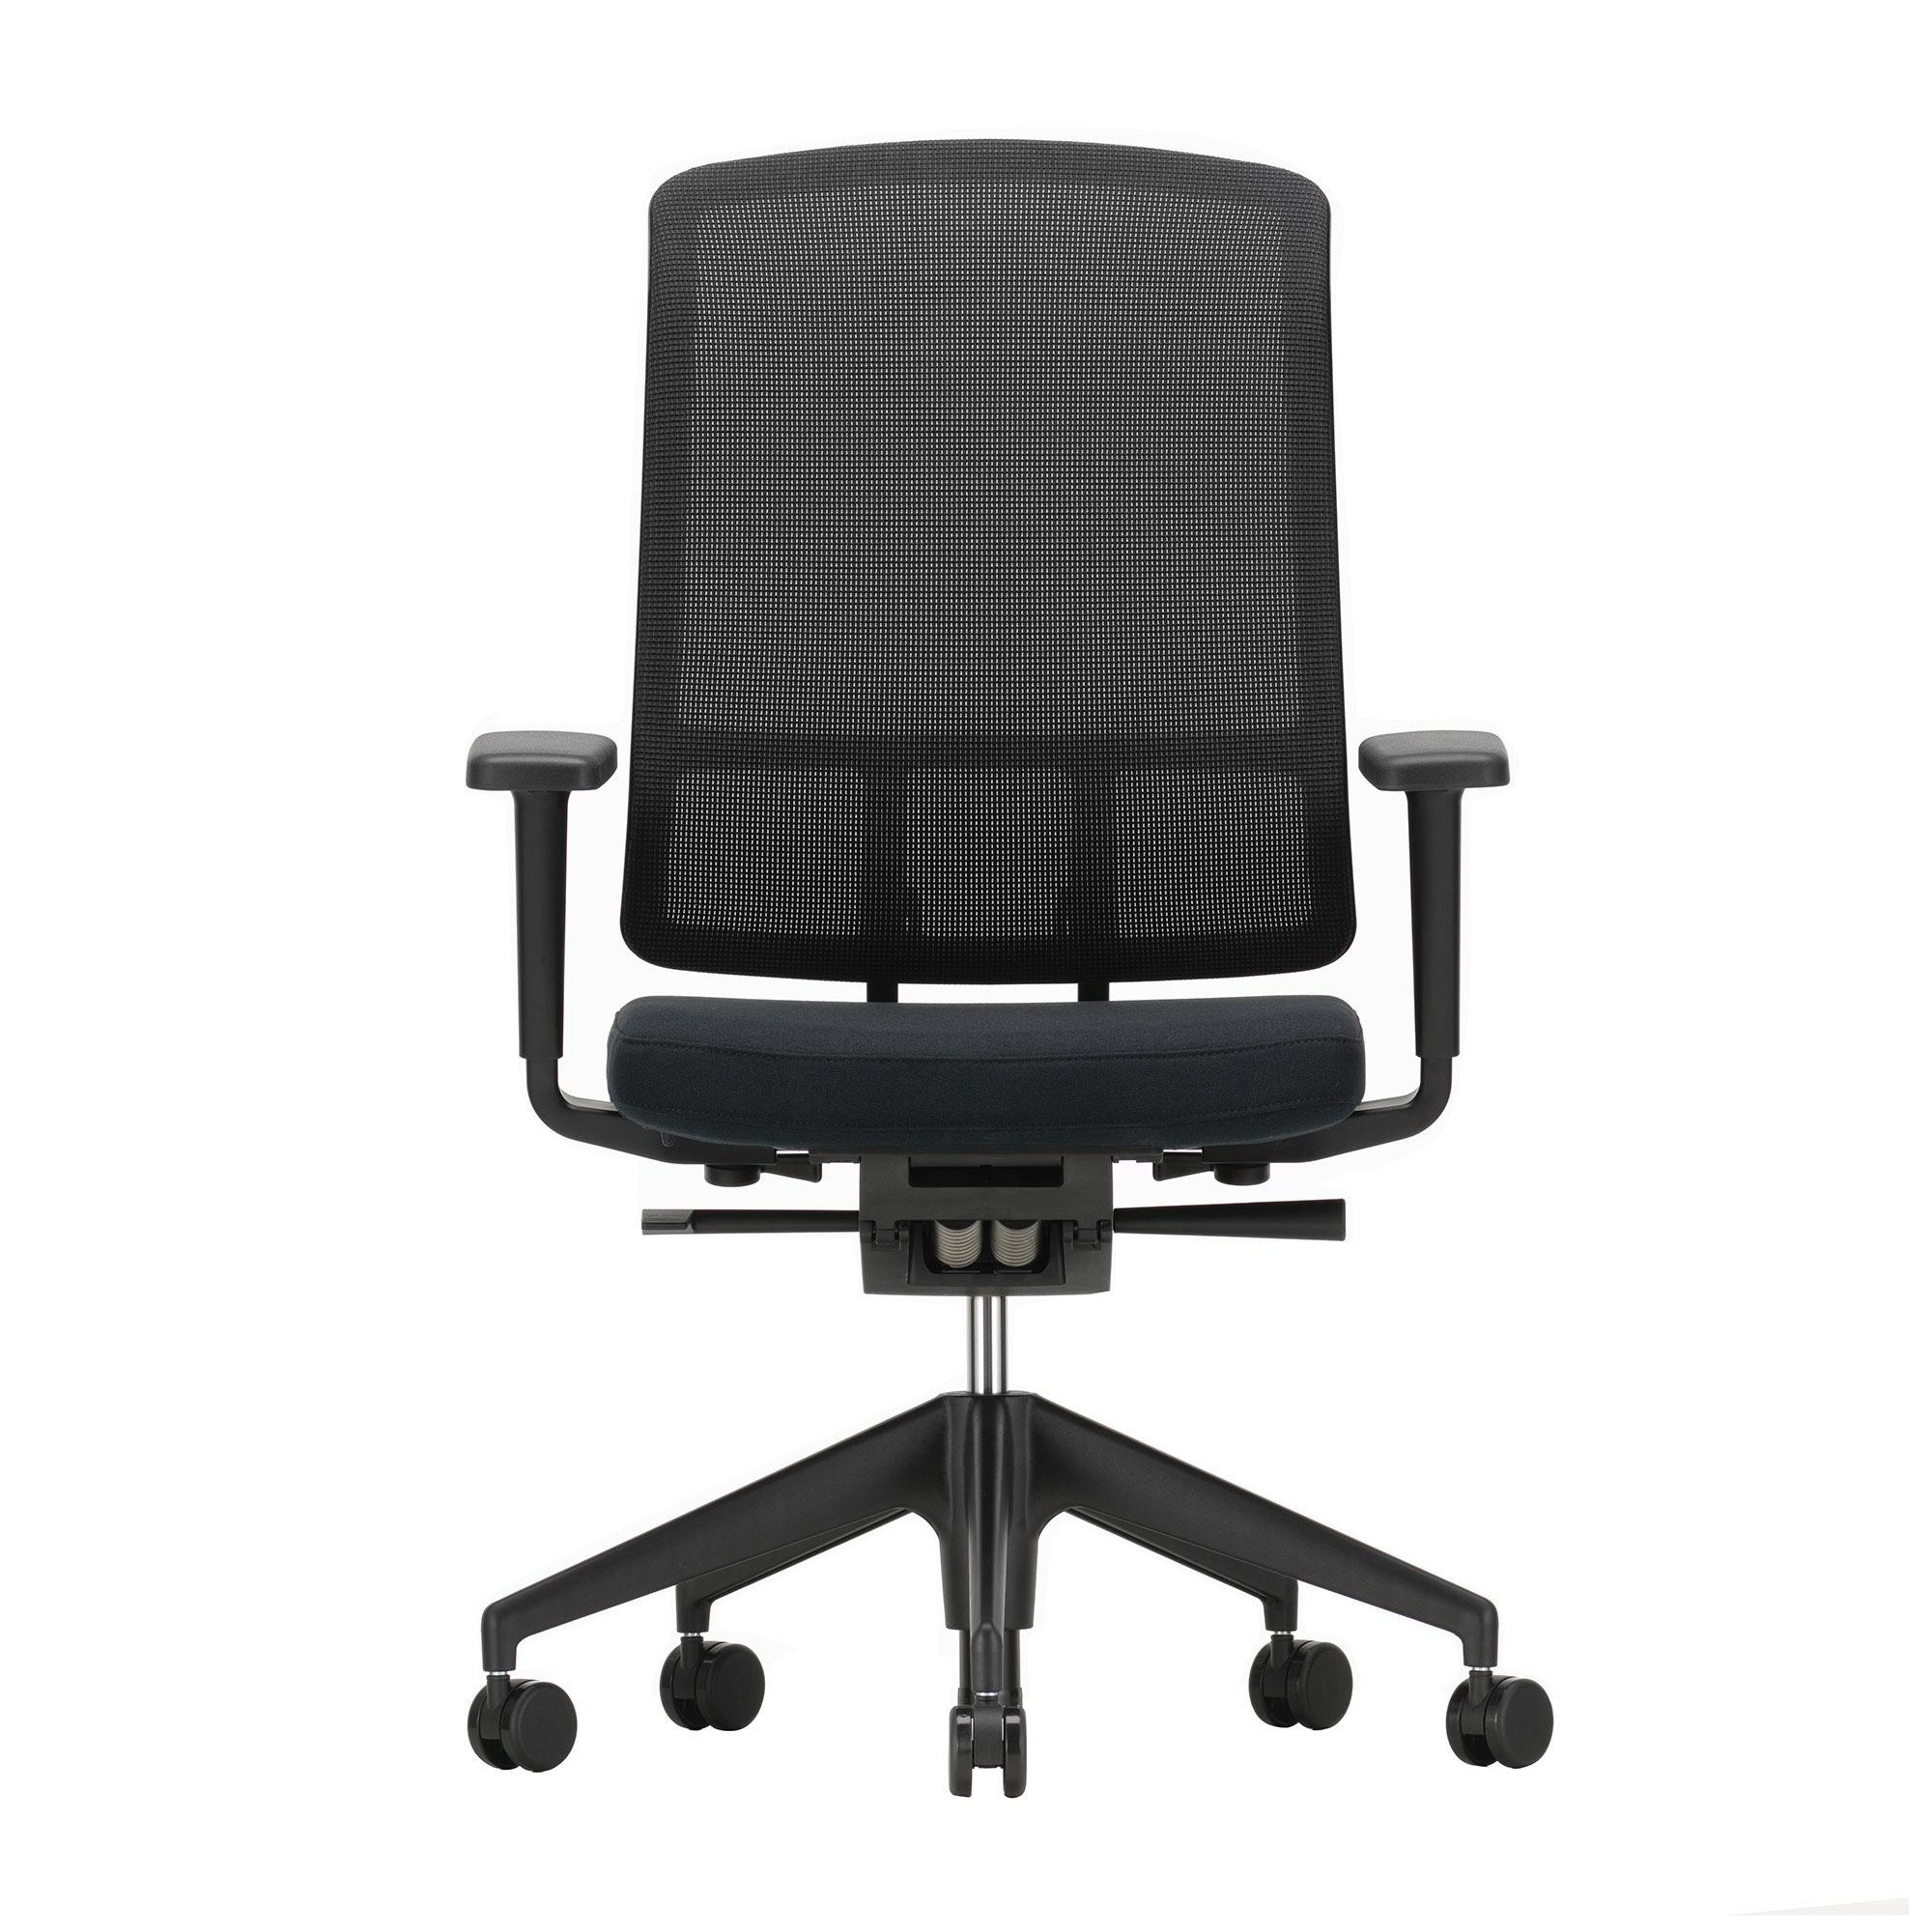 Vitra AM Chair - Silla giratoria de oficina | AmbienteDirect